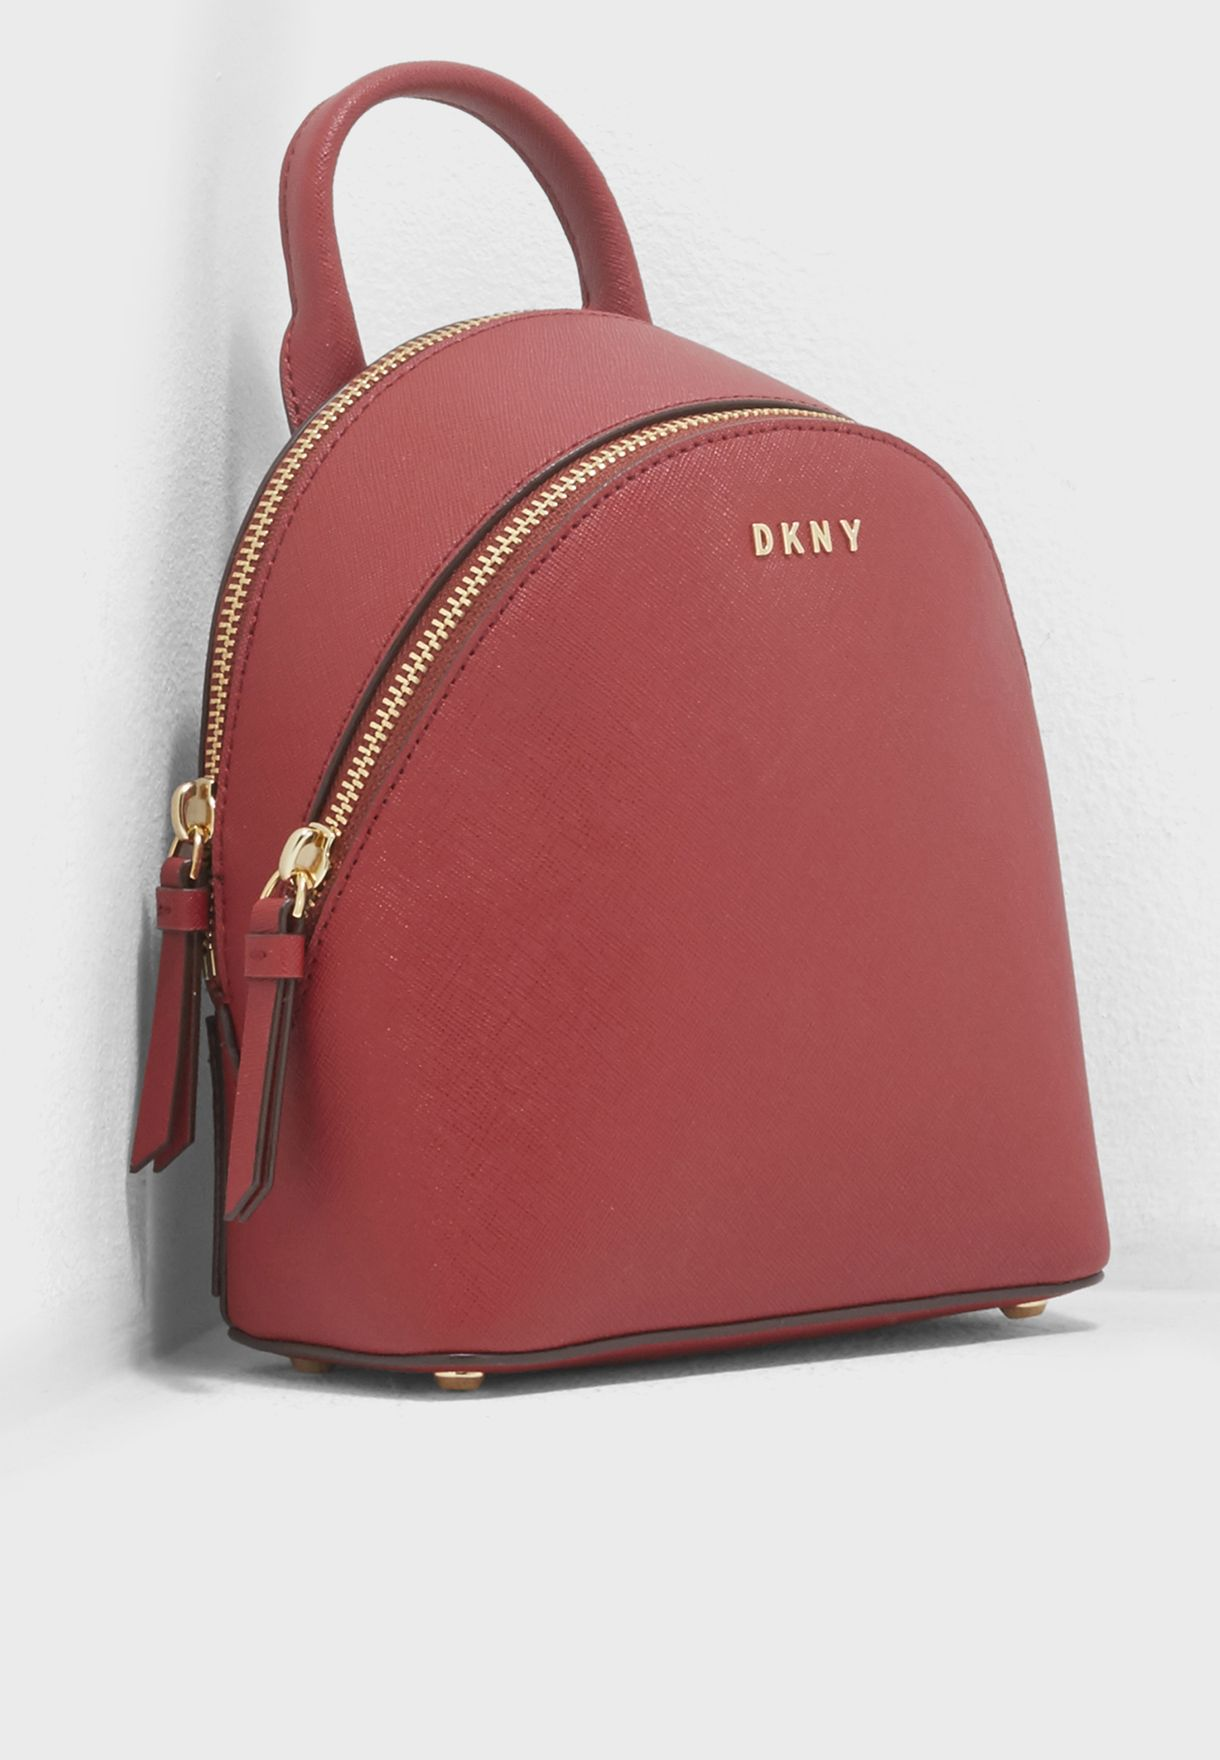 632a47853a Shop DKNY red Mini Backpack Crossbody R74K1007 for Women in UAE ...